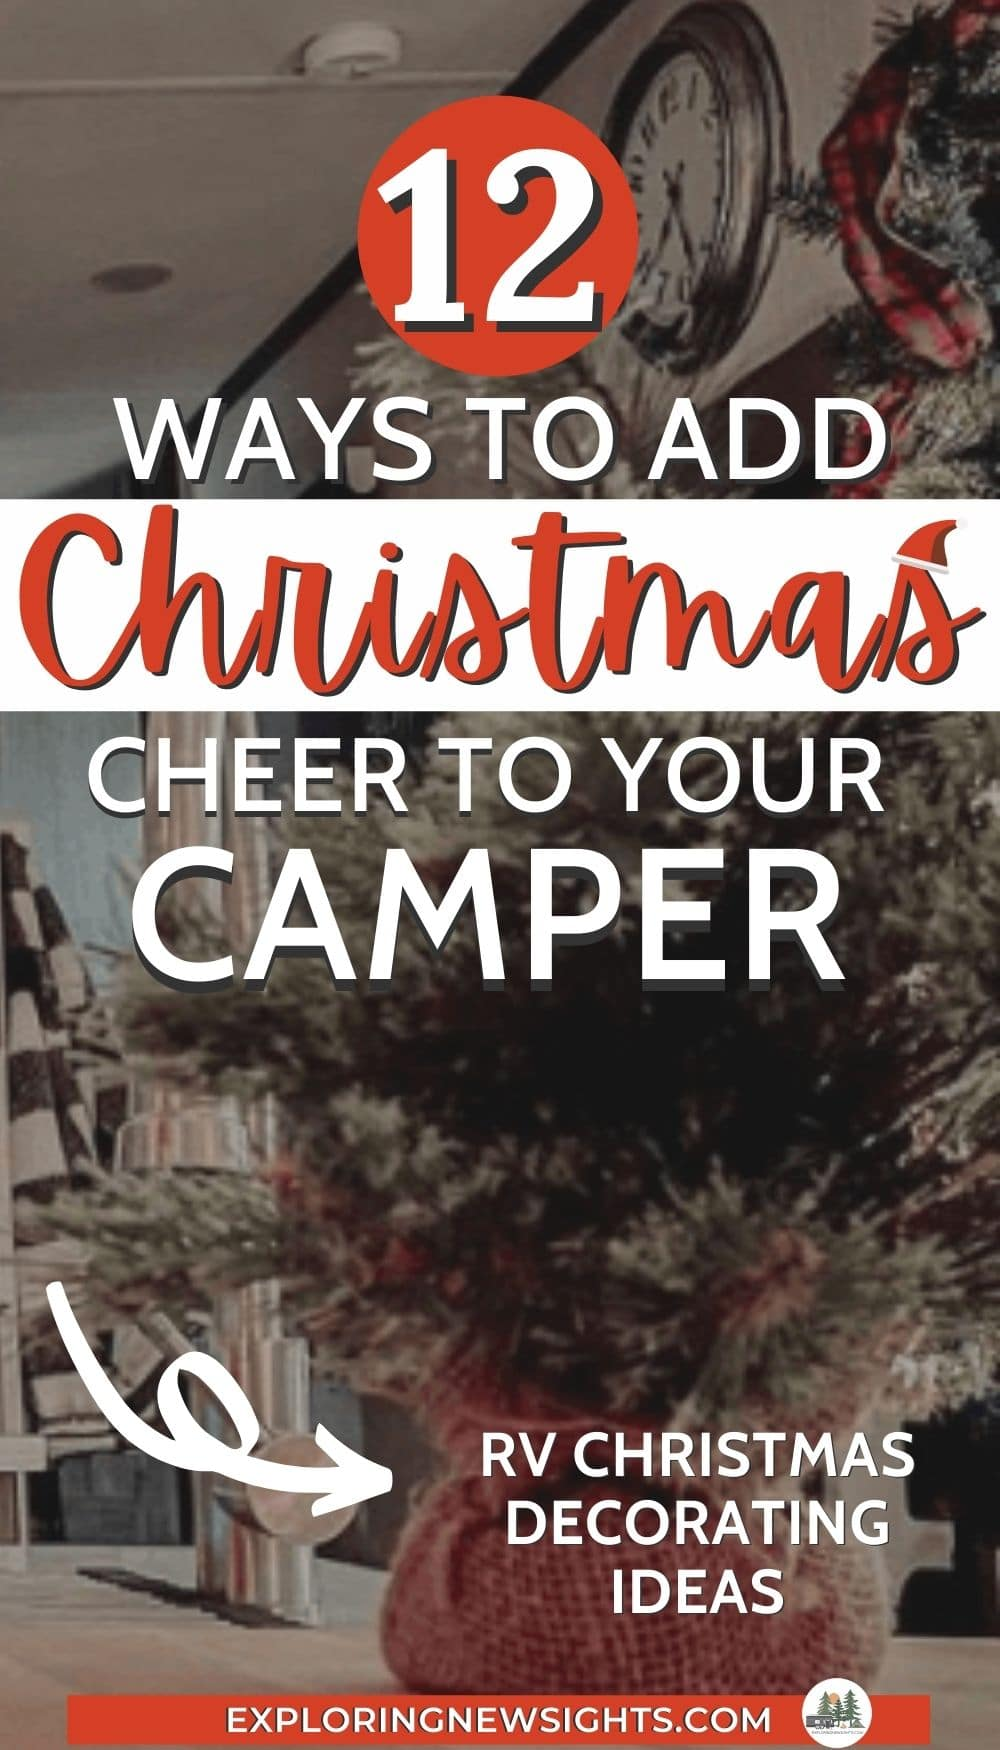 RV Christmas Decorating Ideas (2)